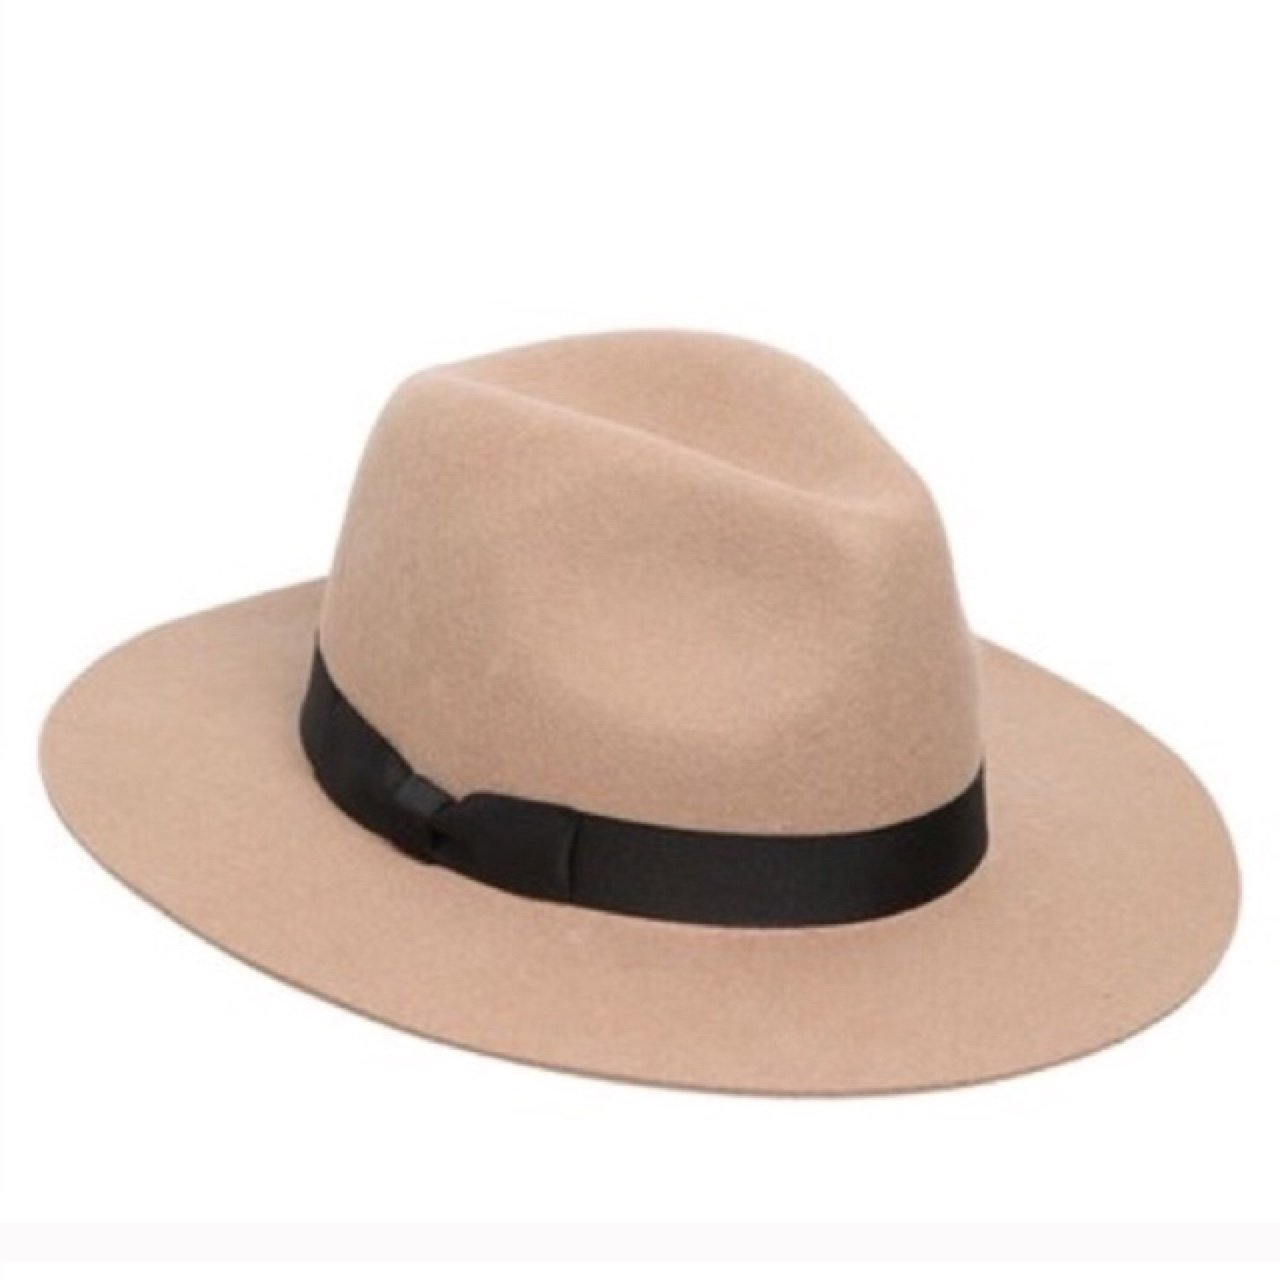 LACK OF COLOR THE MIRAGE CAMEL WOOL FEDORA HAT Super cute + - Depop 47ec27a4162